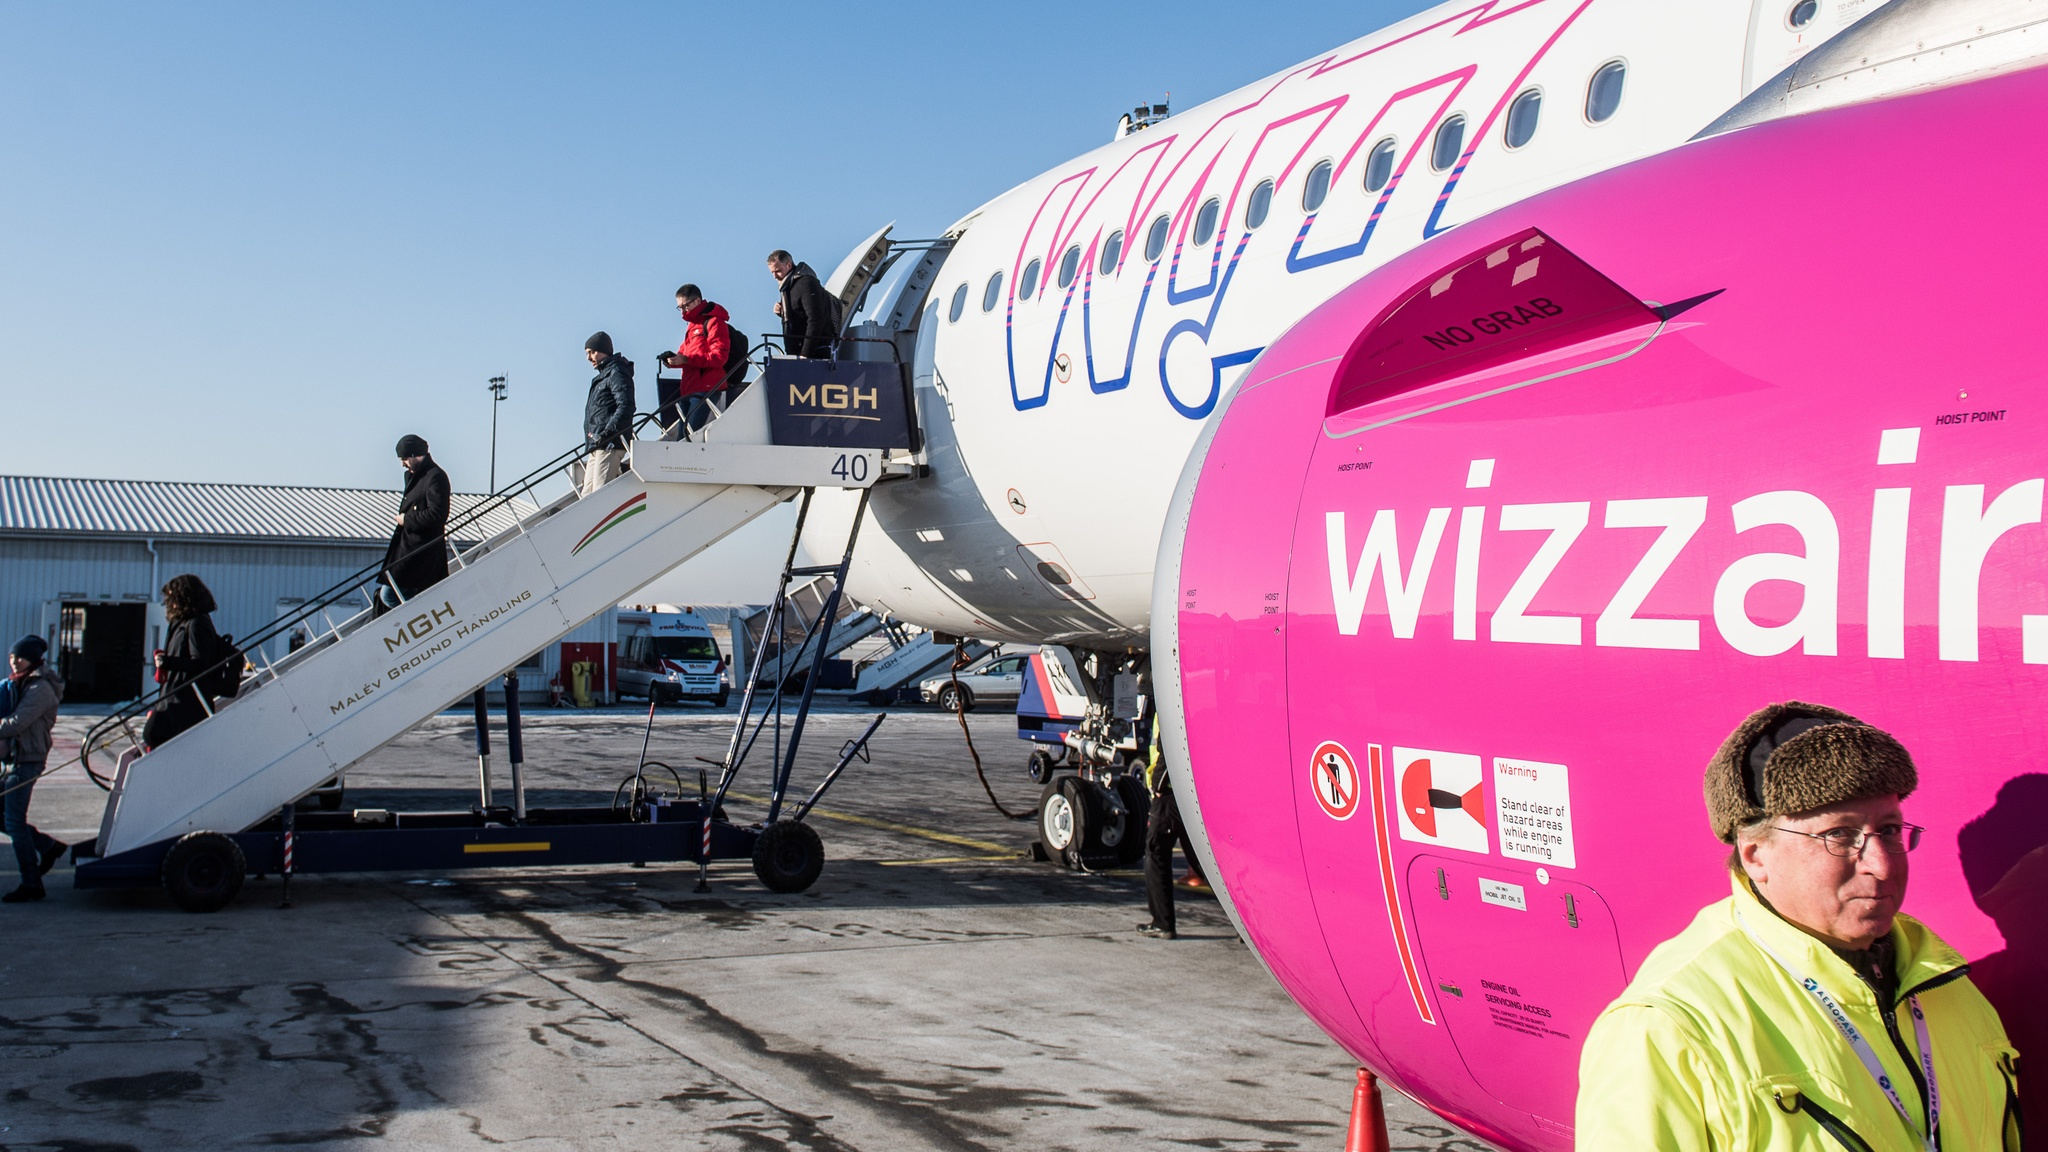 Wizz Air Boss Pledges To Grow Even Faster Despite Brexit Financial Times